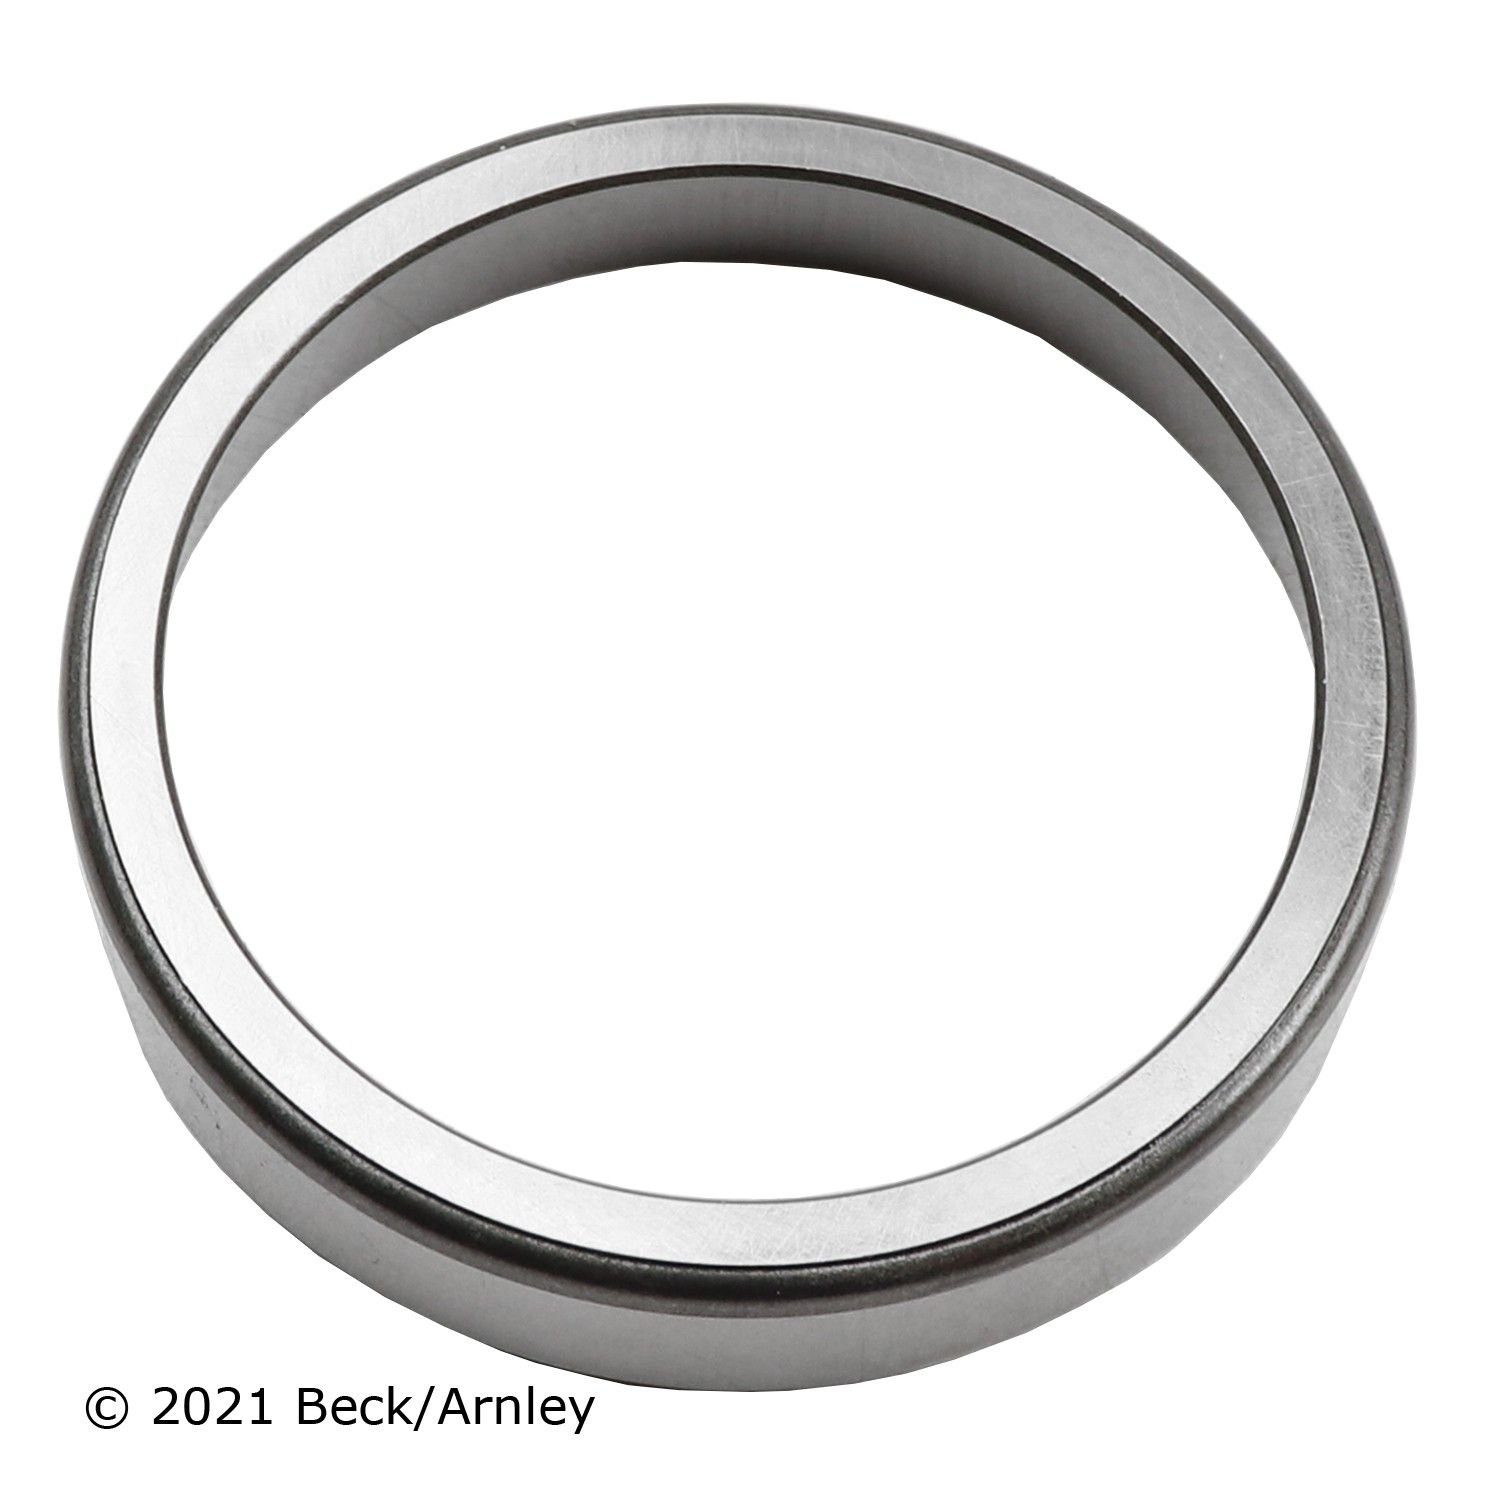 1976 Audi 100 Series Differential Bearing - Rear Right (Beck Arnley  051-2683)